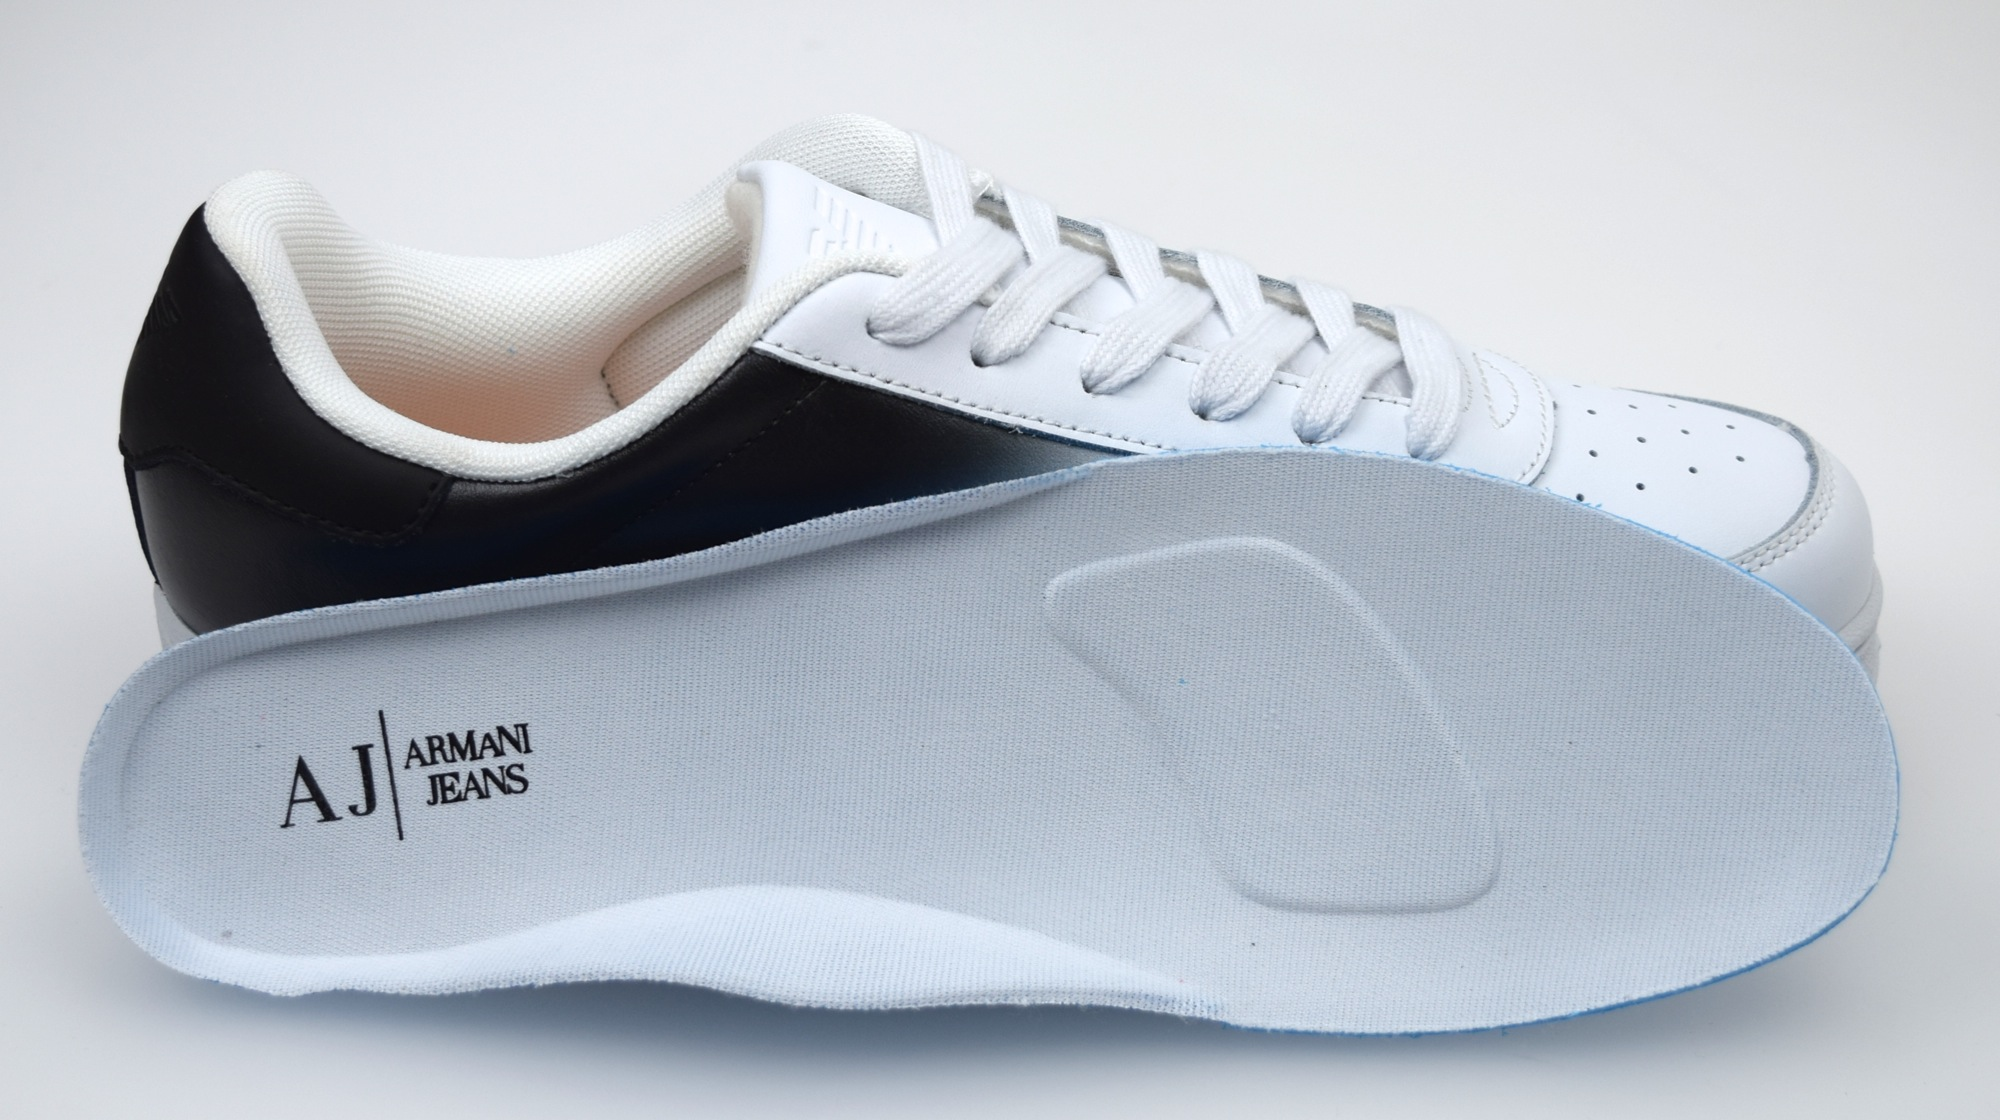 armani jeans man sneaker shoes white and black leather code b6565 ebay. Black Bedroom Furniture Sets. Home Design Ideas